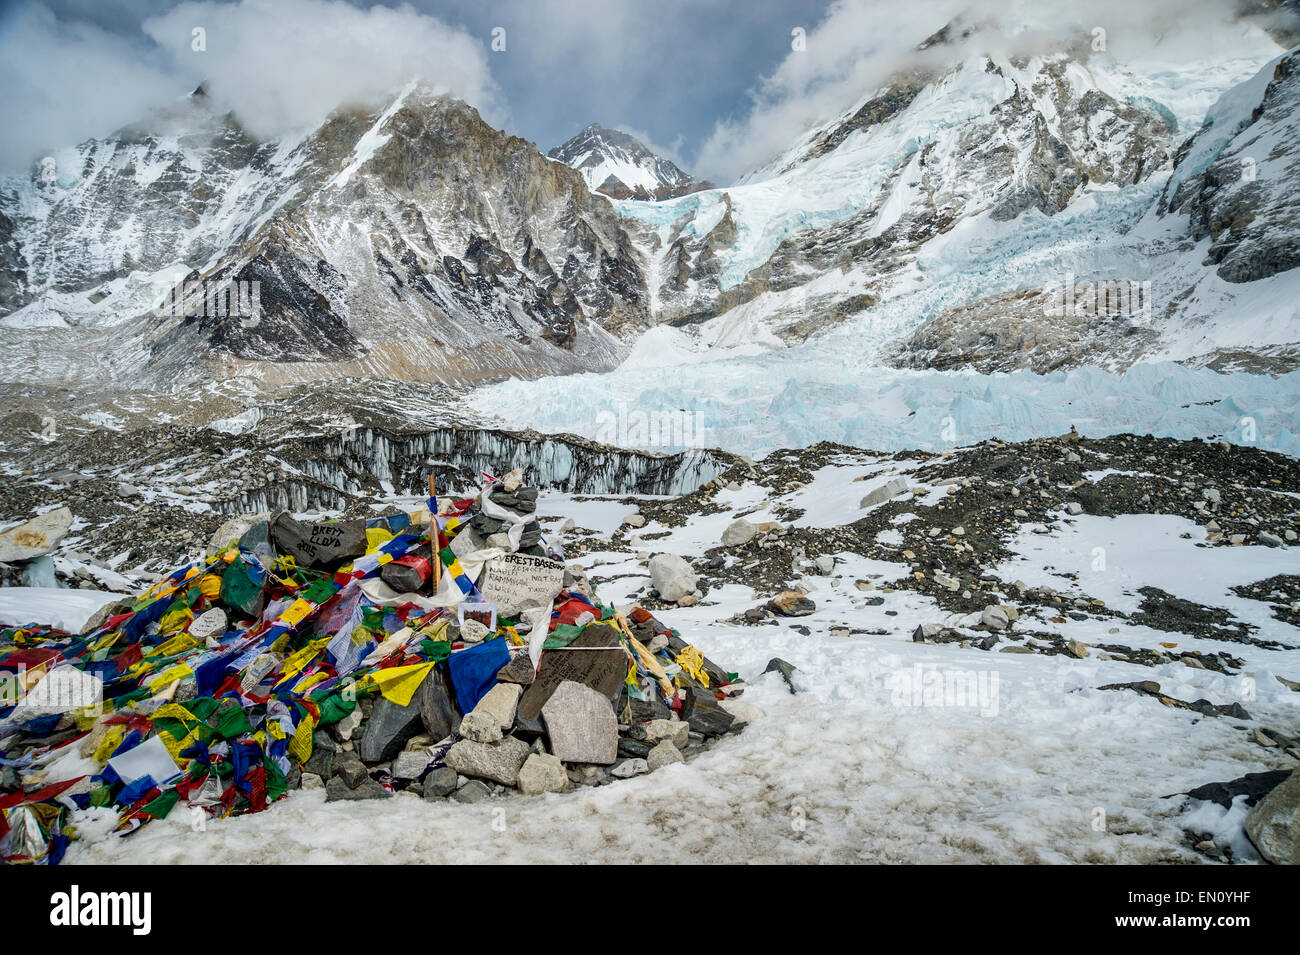 Everest Base Camp in March 2015 - Stock Image